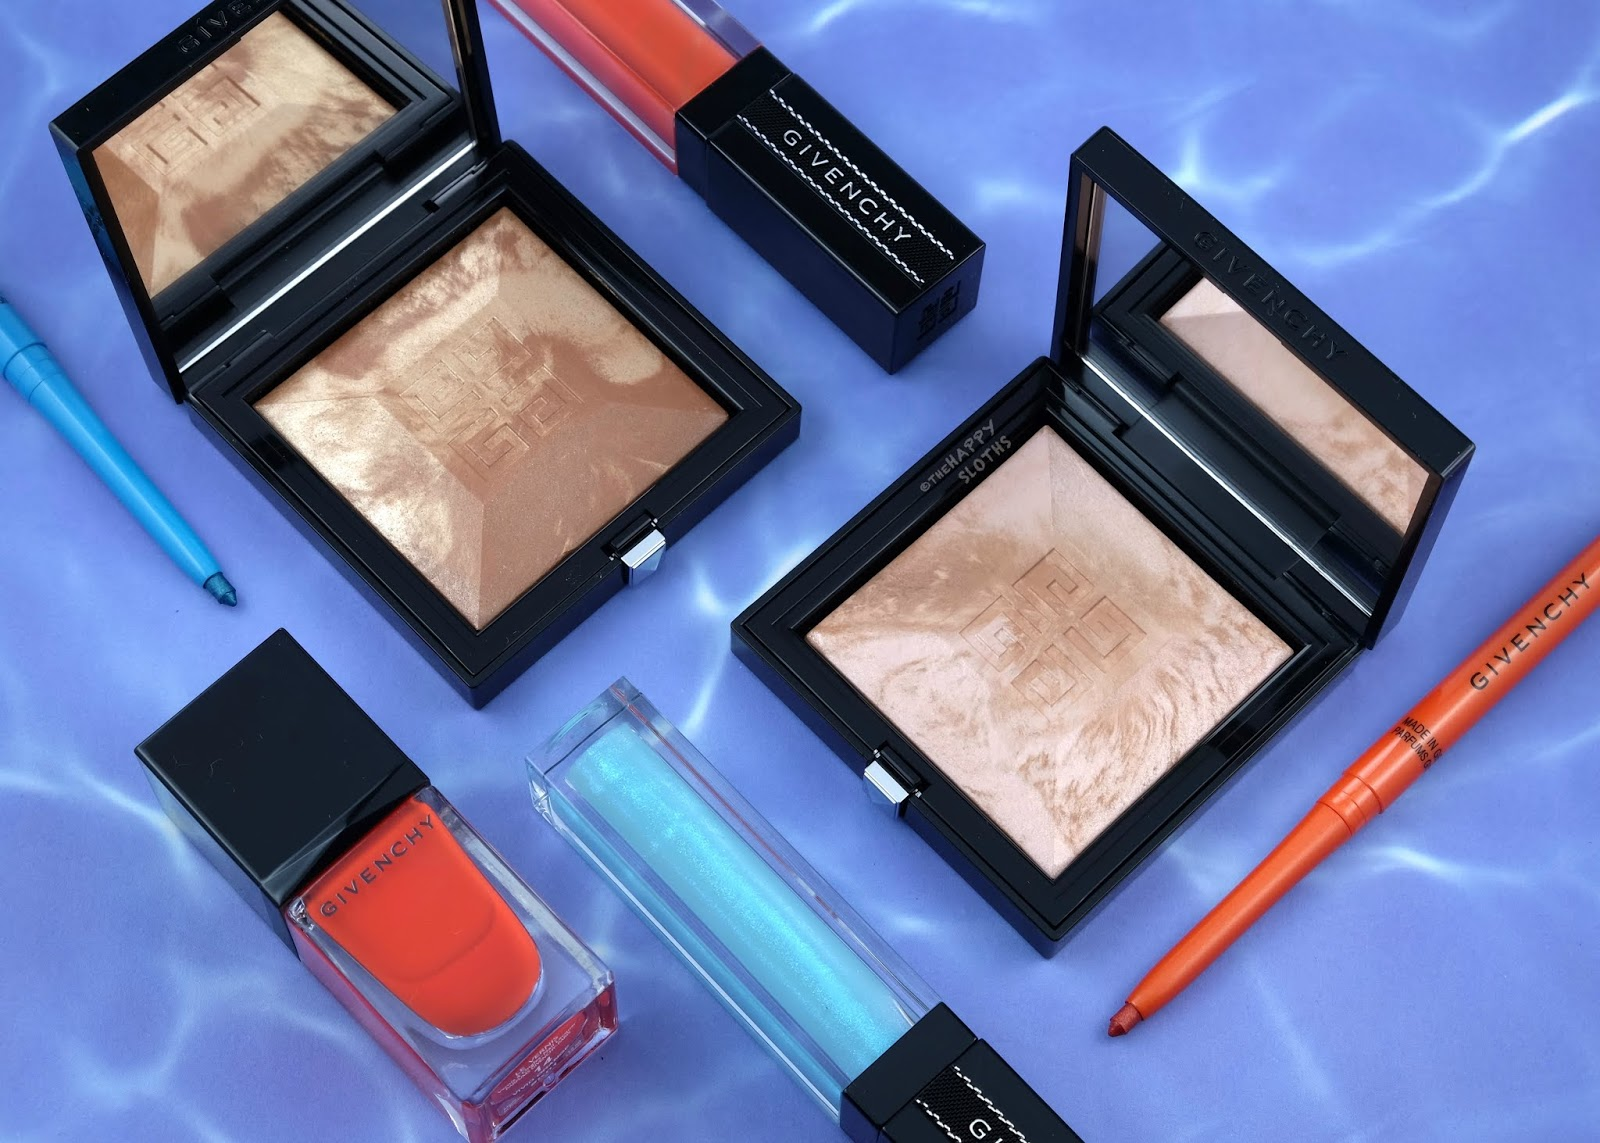 Givenchy | Summer 2019 Solar Pulse Collection: Review and Swatches